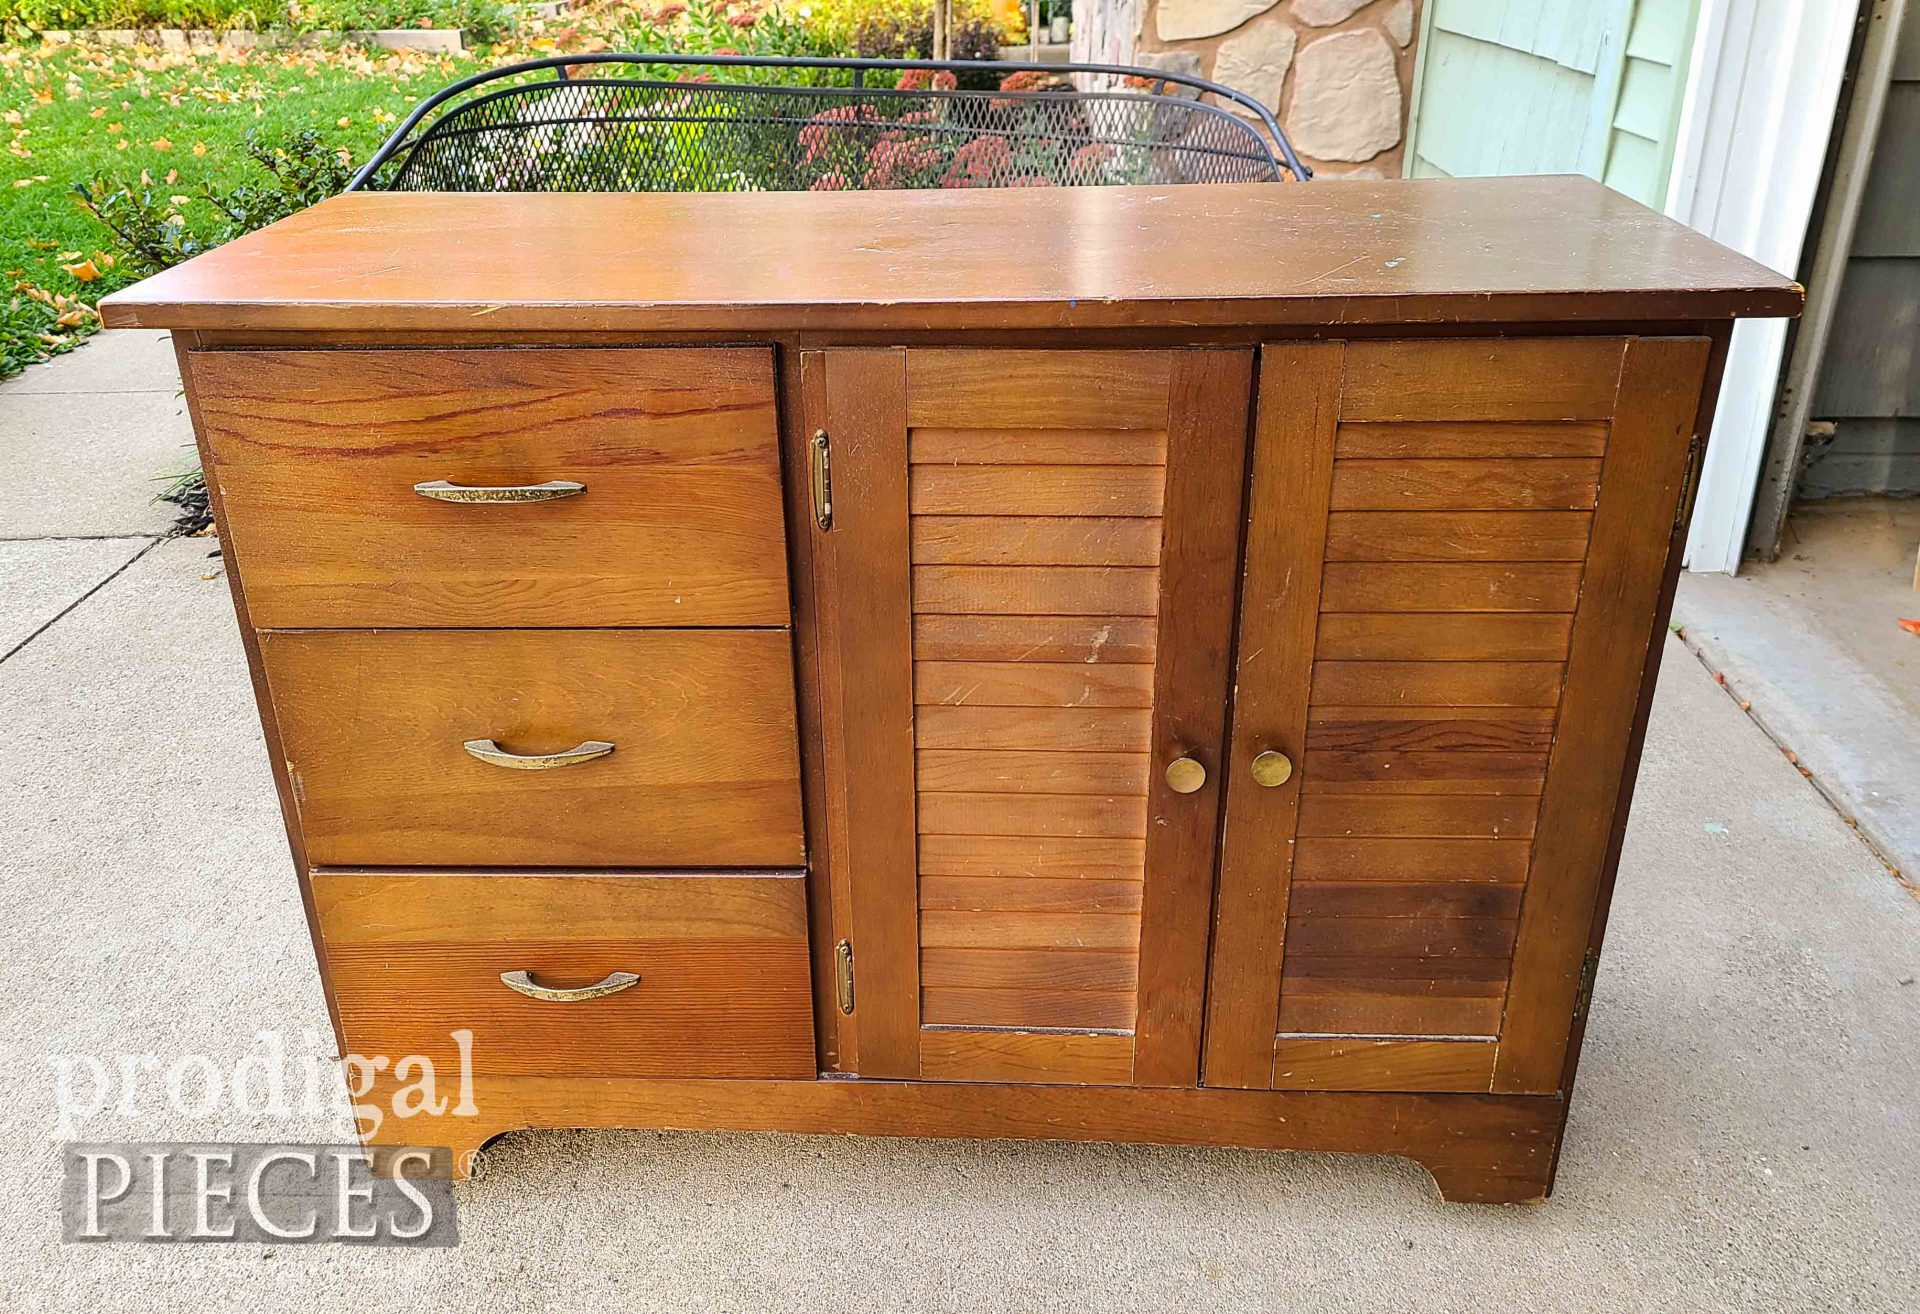 Louvered Cabinet Before by Prodigal Pieces | prodigalpieces.com